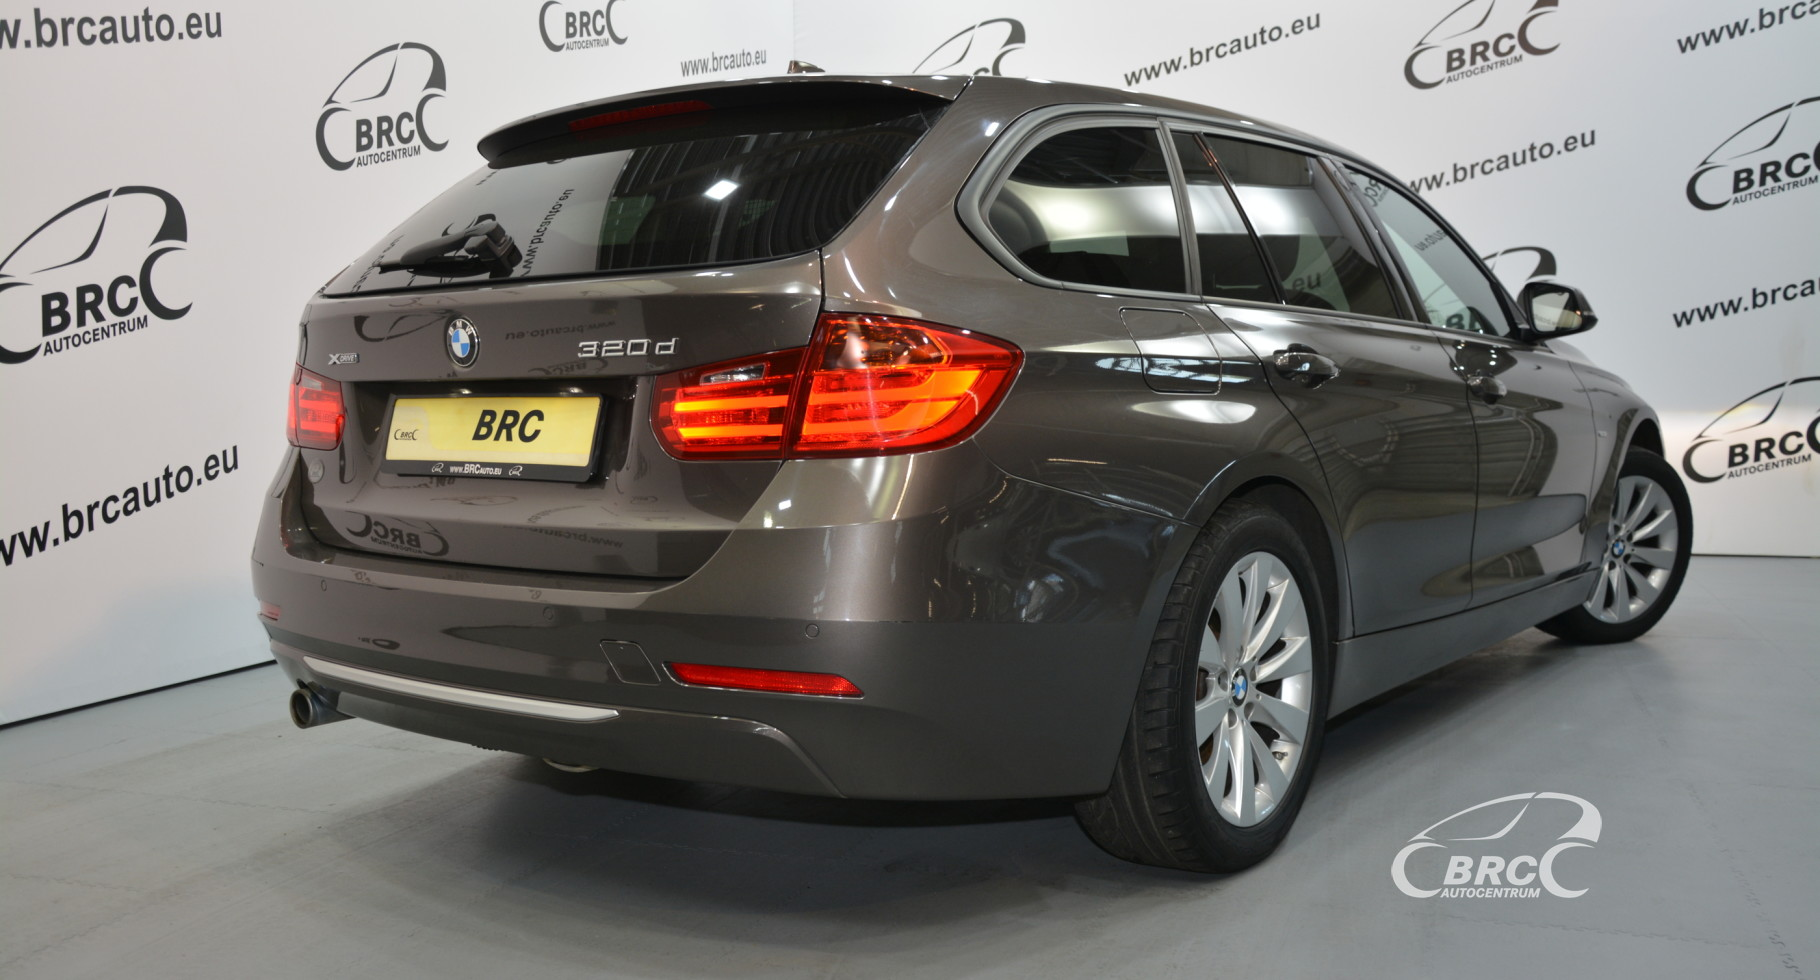 BMW 320 d Turing x-Drive Modern Individual  Automatas